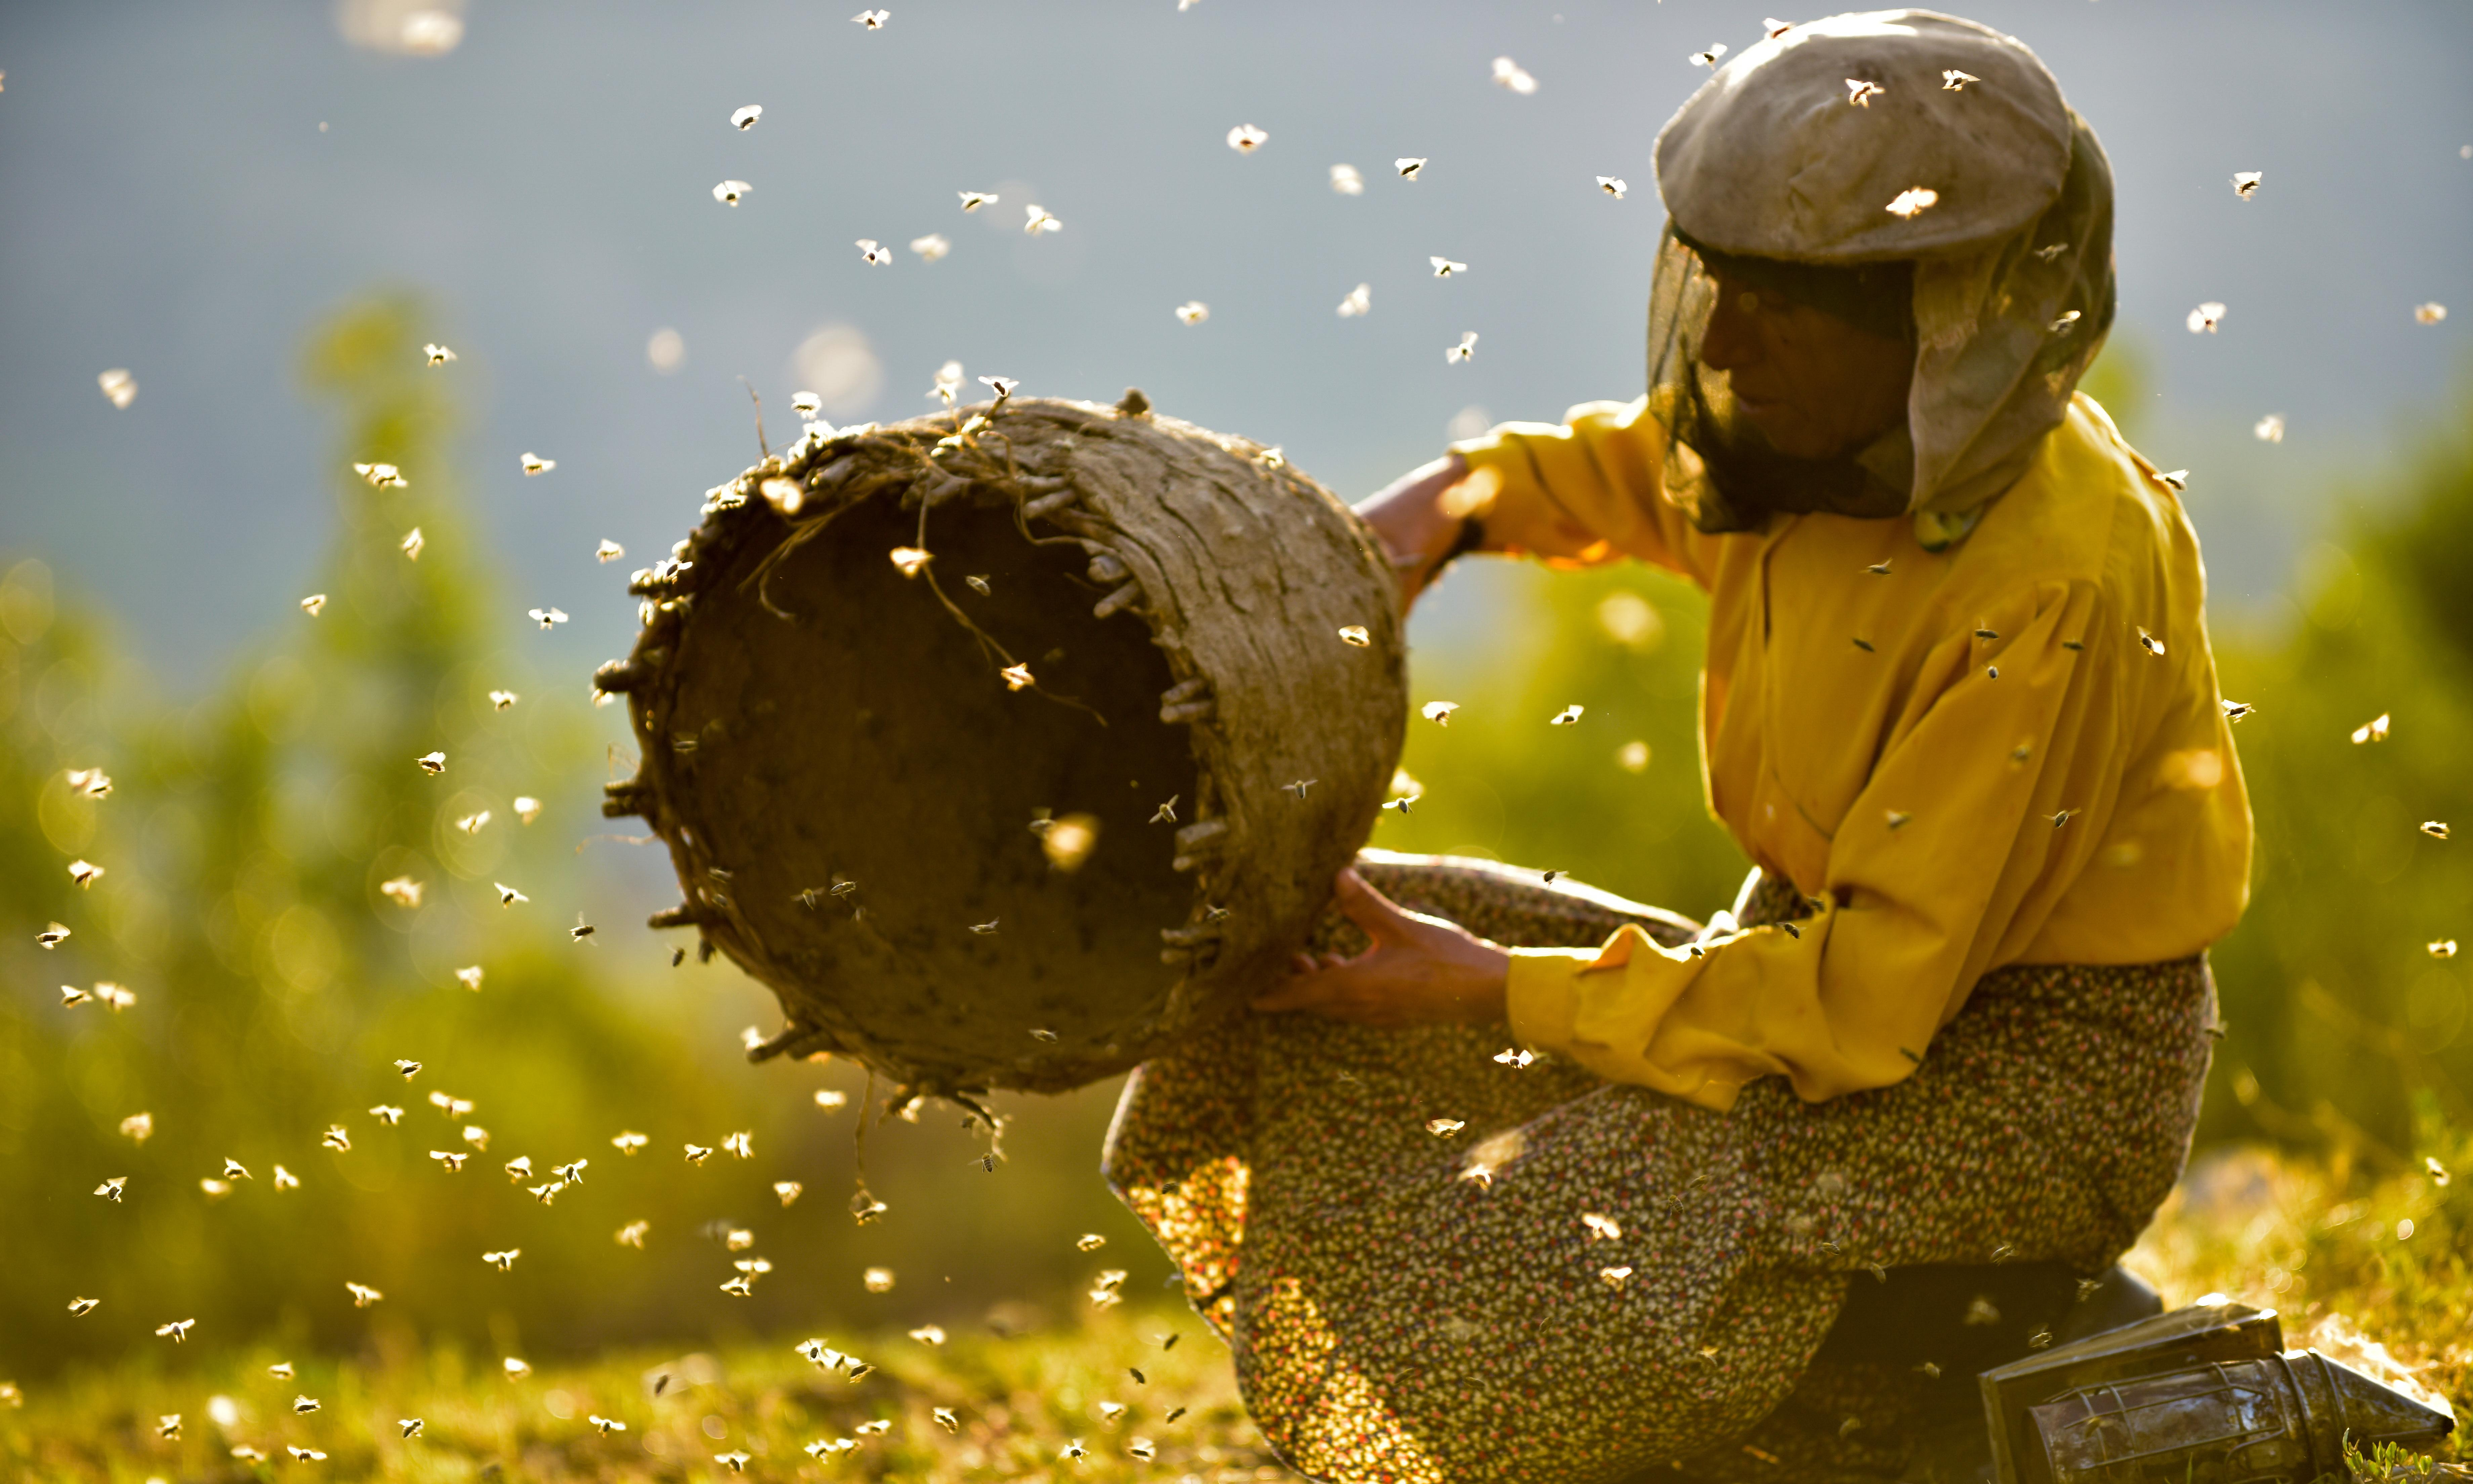 Honeyland review – beekeeper's life with a sting in the tale